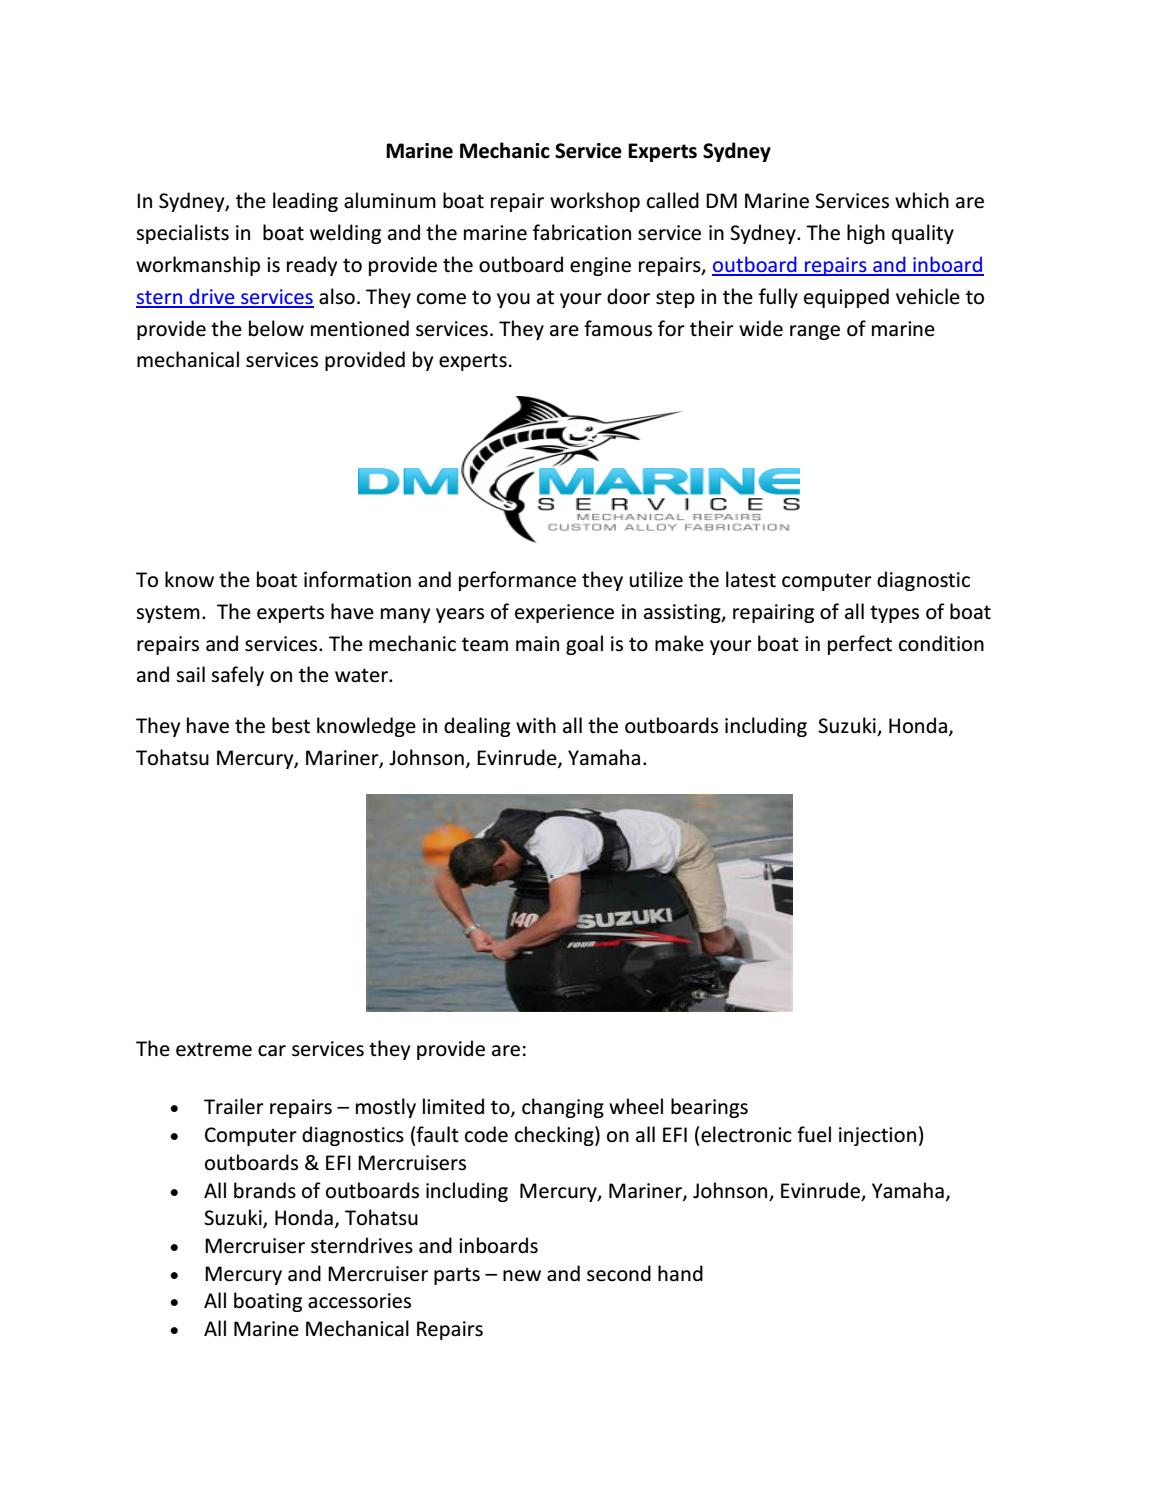 Marine mechanic service experts sydney by DM Marine Services - issuu